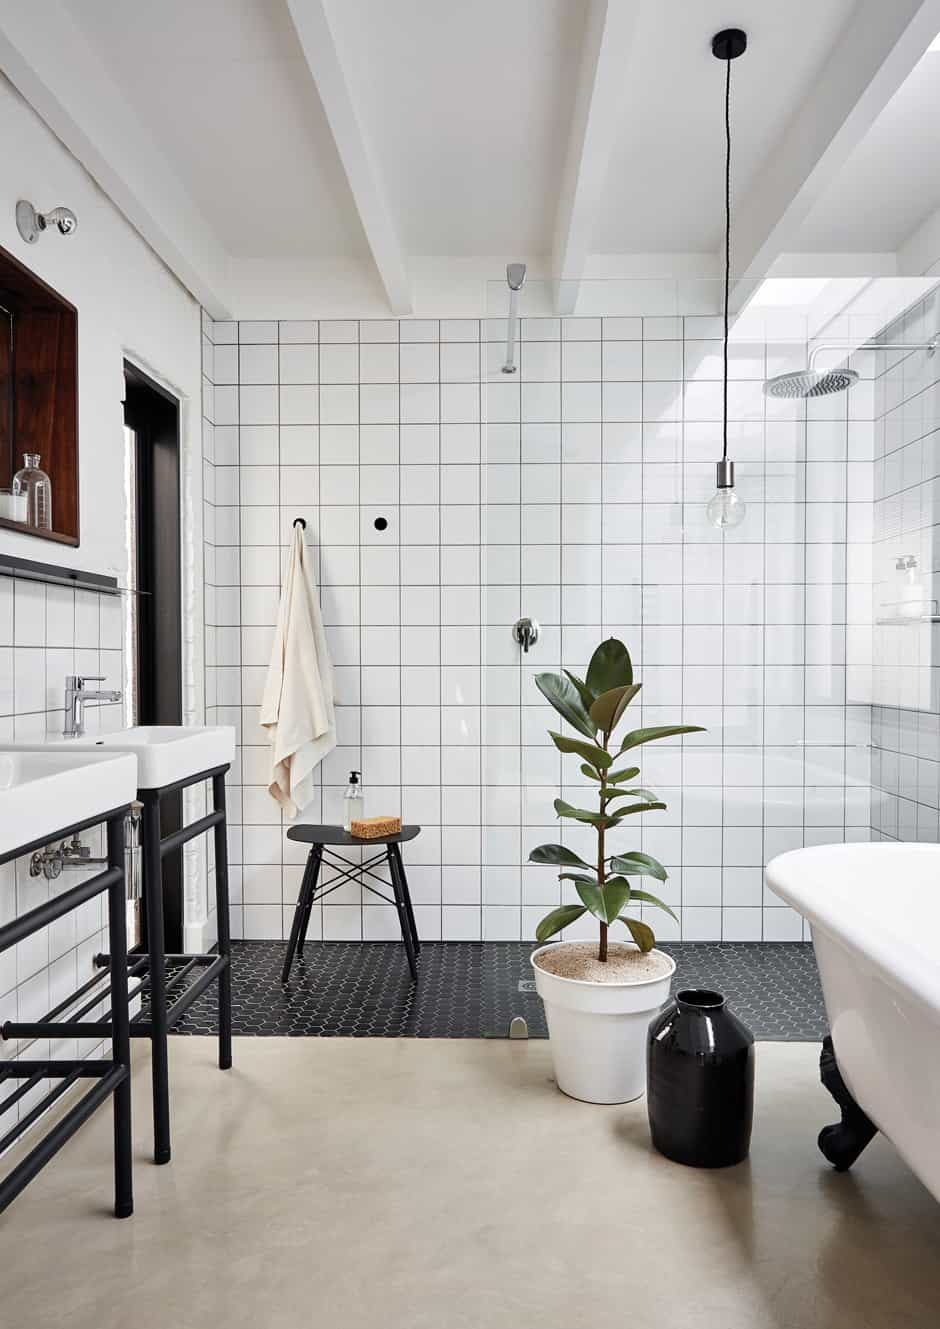 BATHROOM The main en-suite bathroom combines modern fittings with a traditional iron ball-and-claw bath. Christo designed the steel plinths for the basins, and a matching Eames-like stool makes a handy repository for bathing accessories. The narrow door leading to a courtyard outside is one of Nico's favourite features as it creates the sensation of being in an outdoor shower.